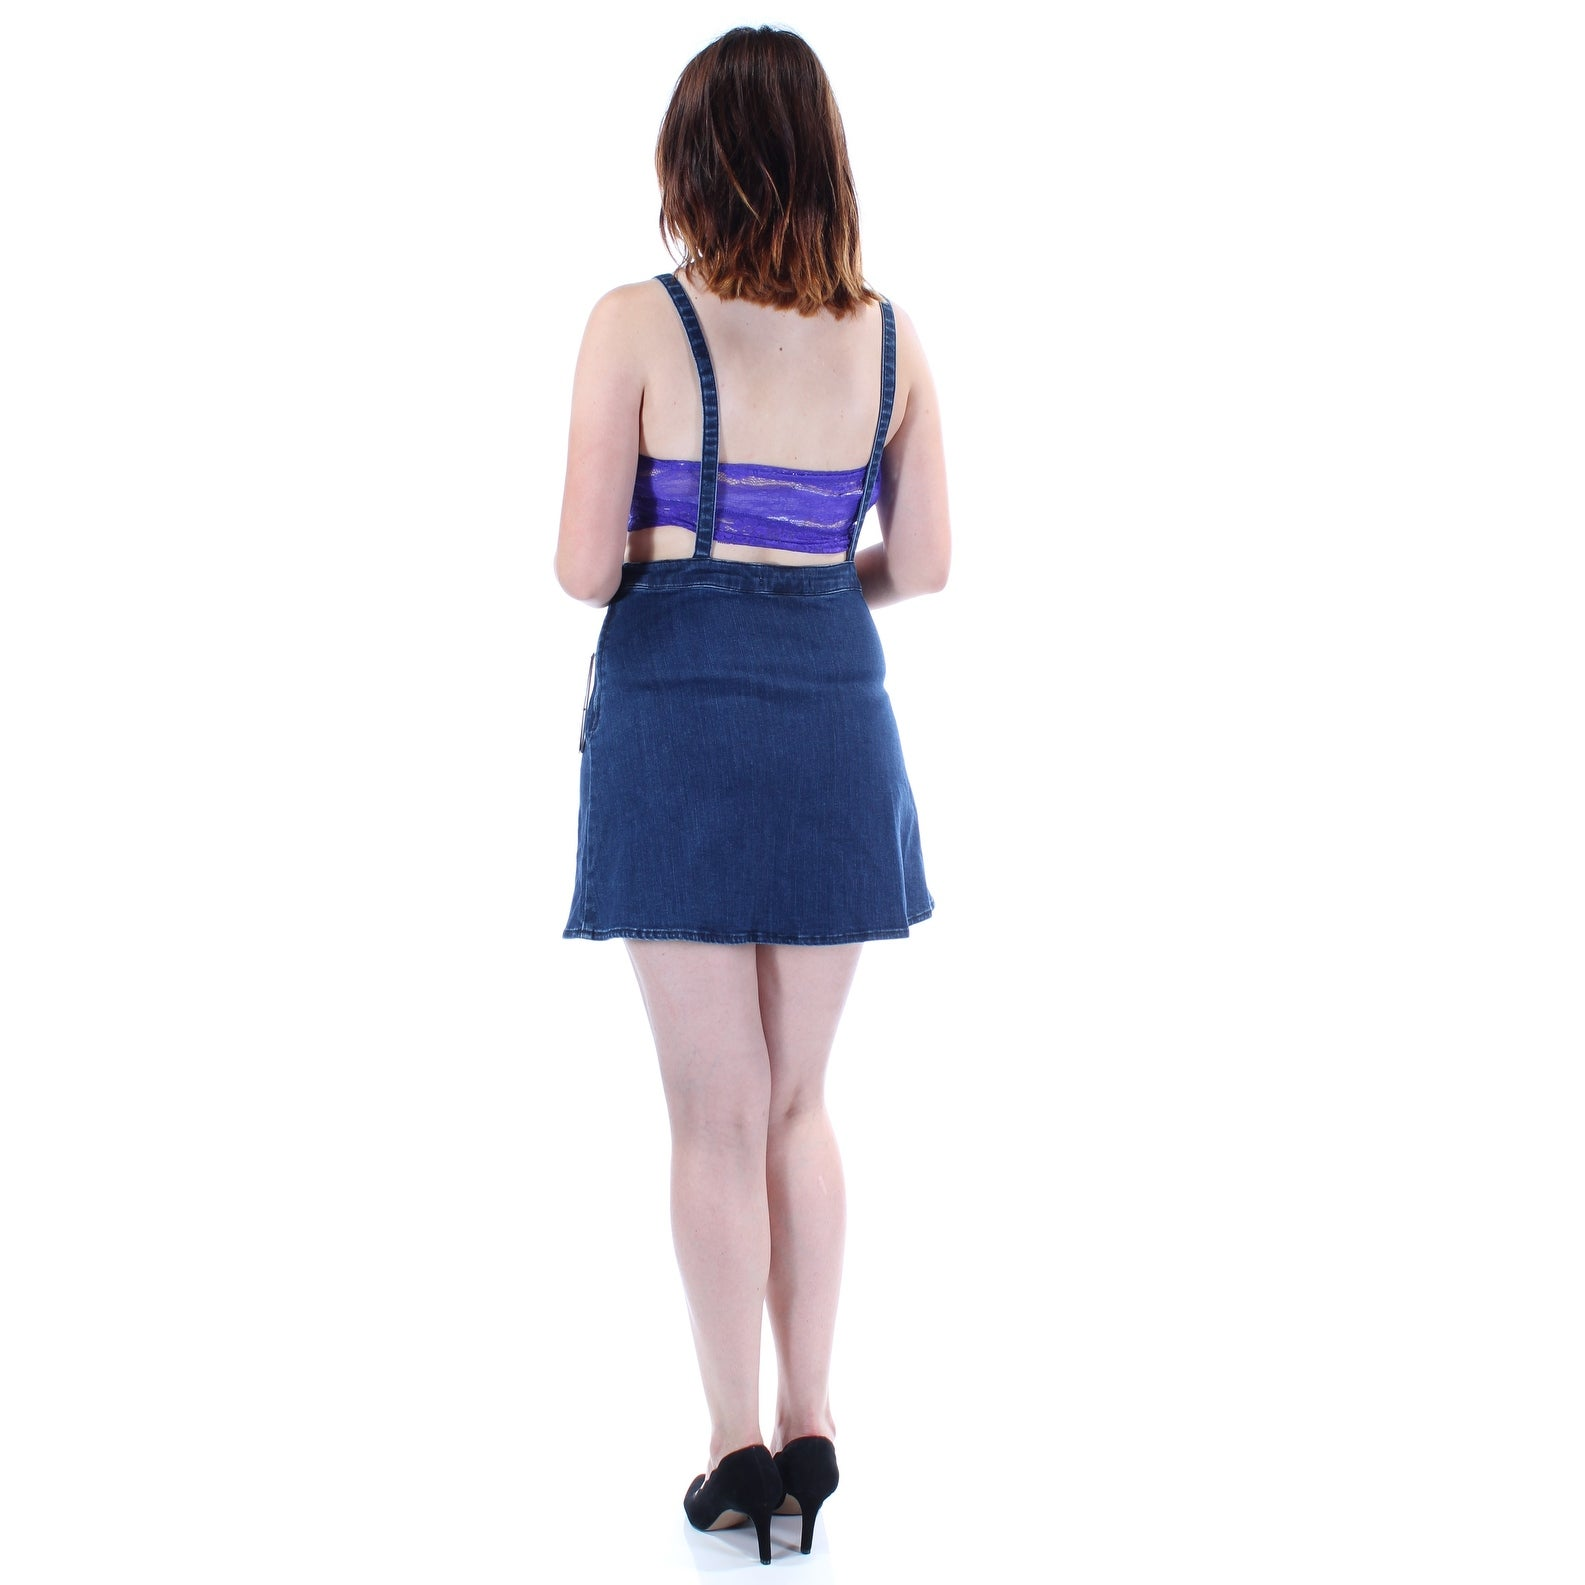 c18928c1066d Shop GUESS Womens Blue Side Zip Sleeveless Square Neck Above The Knee Pencil  Skirt Size  6 - Free Shipping On Orders Over  45 - Overstock.com - 24058068